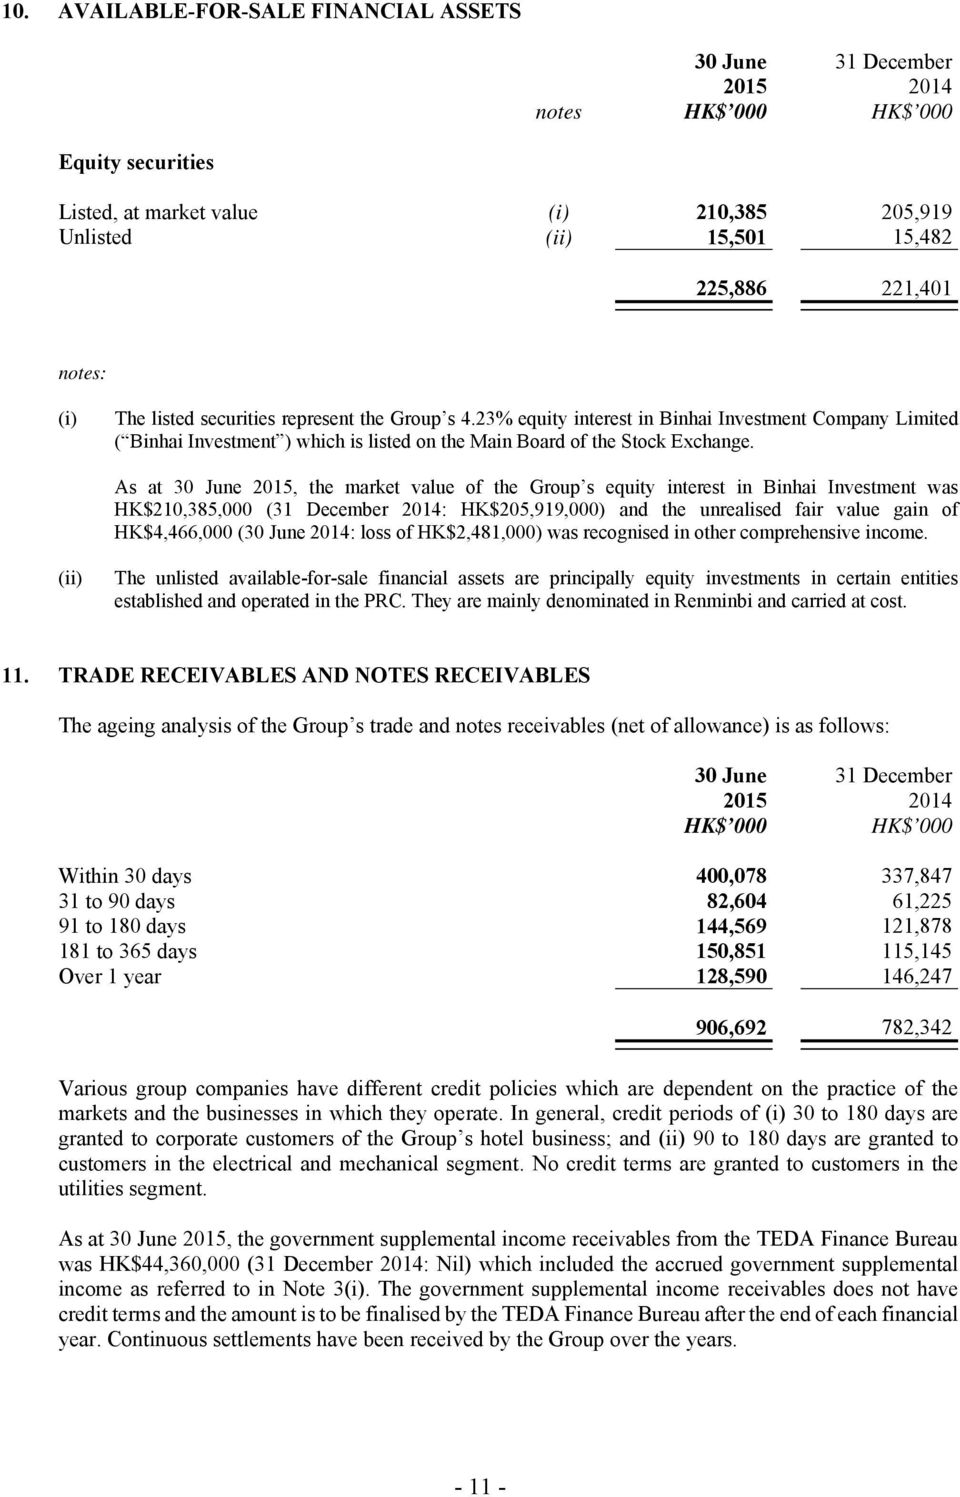 As at 30 June 2015, the market value of the Group s equity interest in Binhai Investment was HK$210,385,000 (31 December 2014: HK$205,919,000) and the unrealised fair value gain of HK$4,466,000 (30